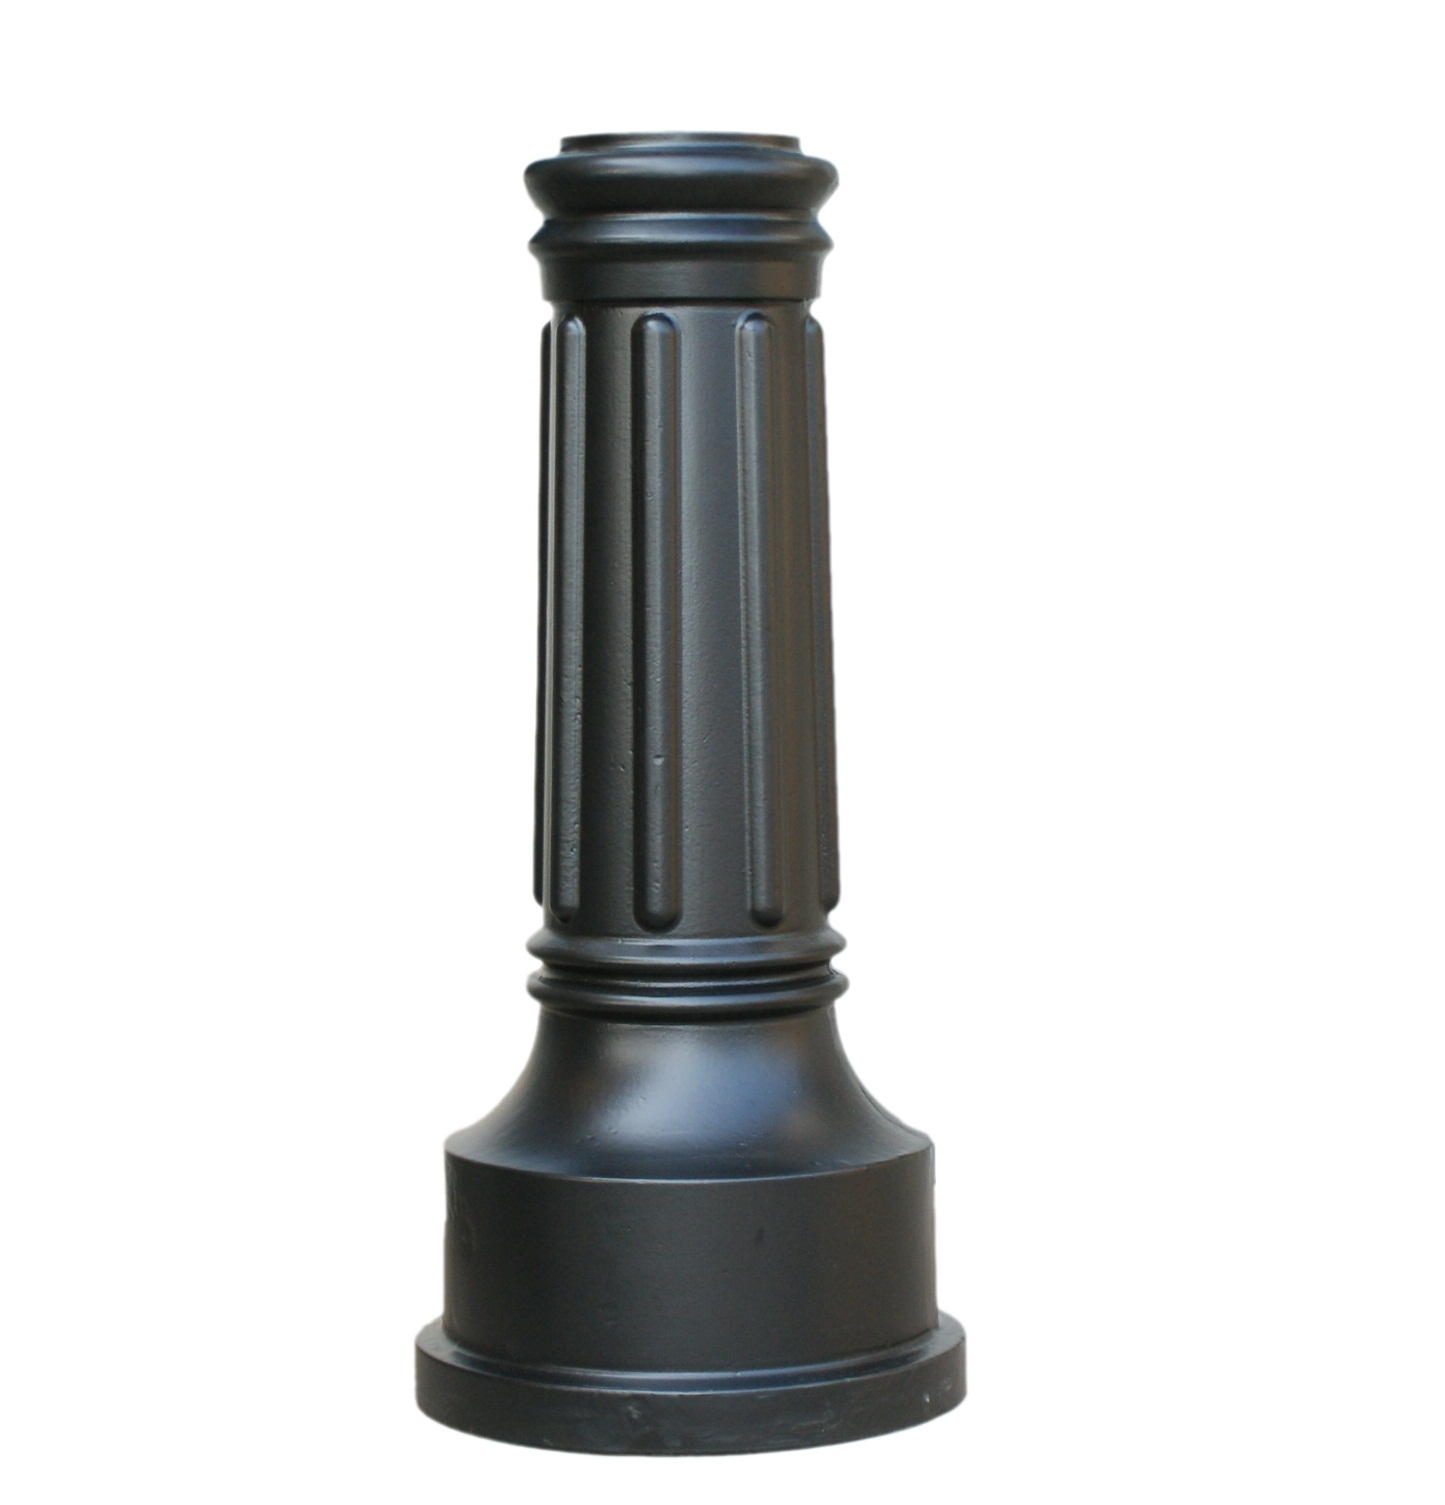 Decorative cast aluminum post base